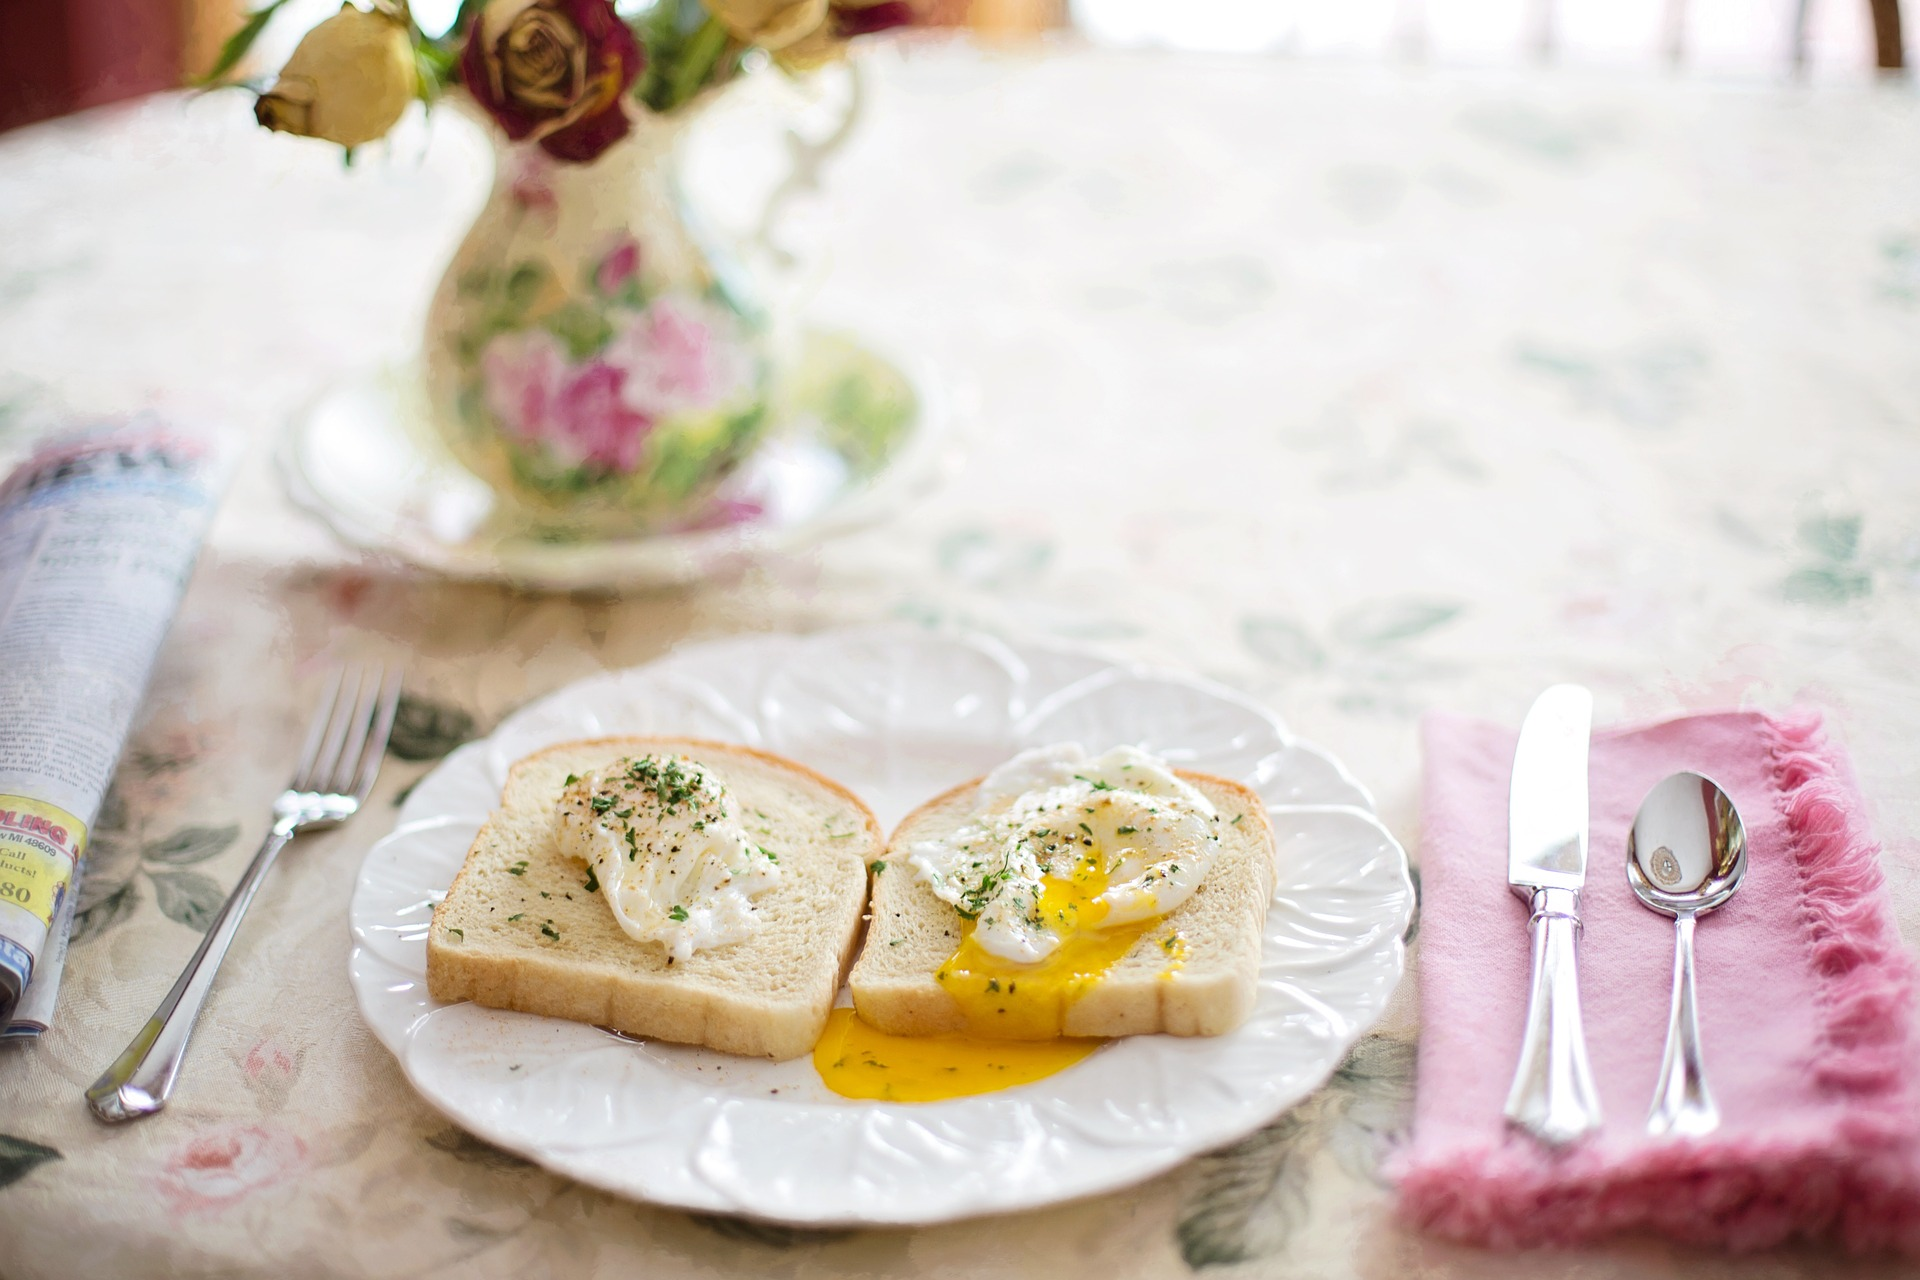 poached-eggs-on-toast-739401_1920